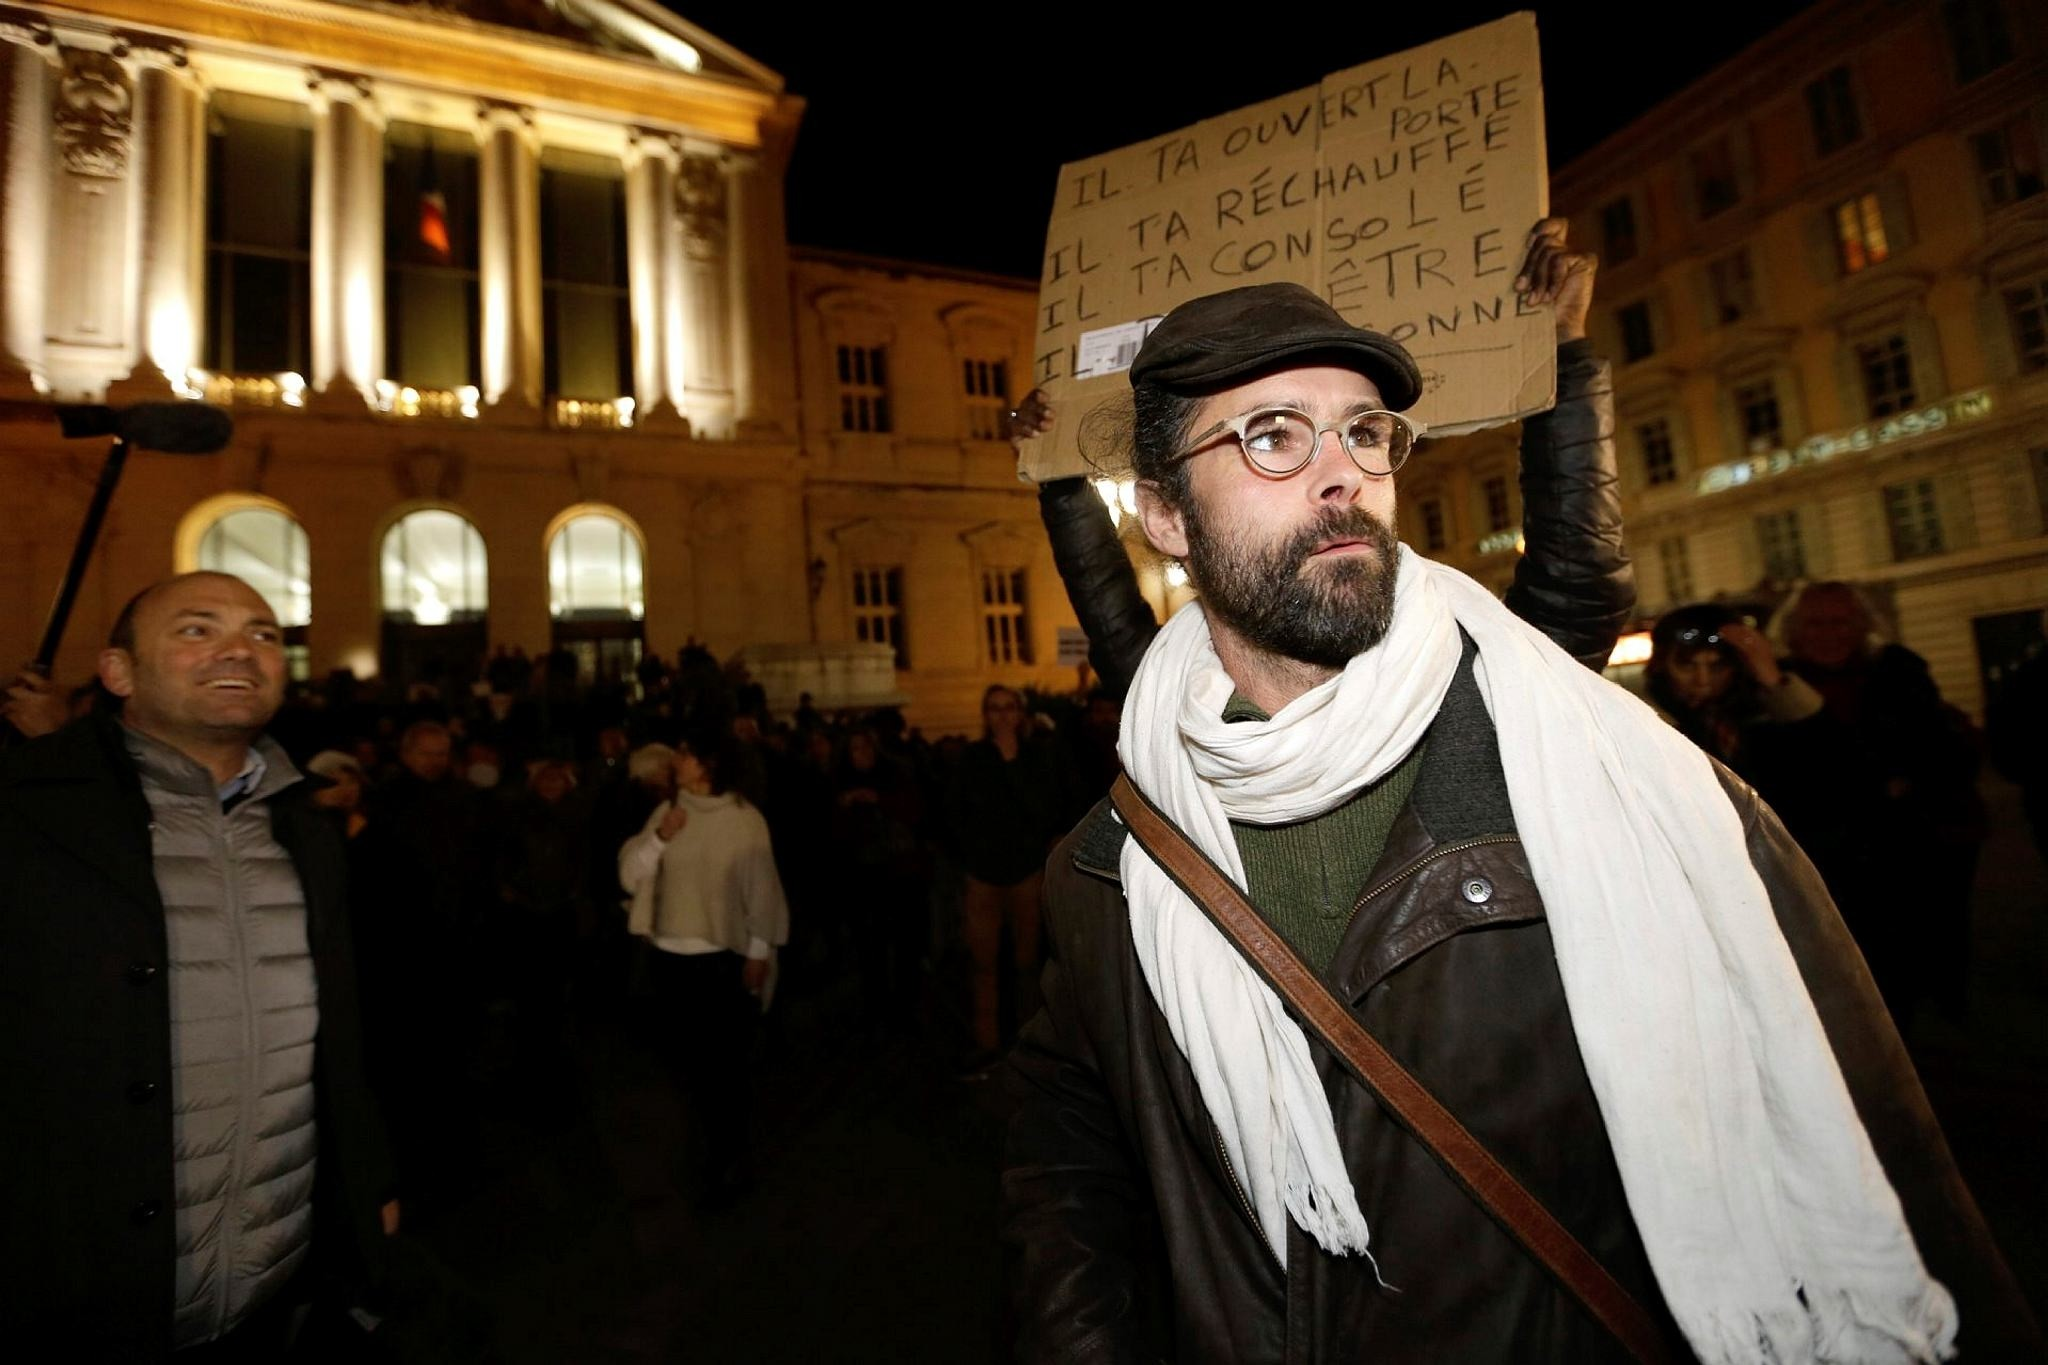 Cedric Herrou, a French activist farmer who is facing up to five years in prison as he goes on trial accused of helping illegal African migrants cross the border from Italy into France, leaves the Nice courthouse, southern France, Jan. 4.